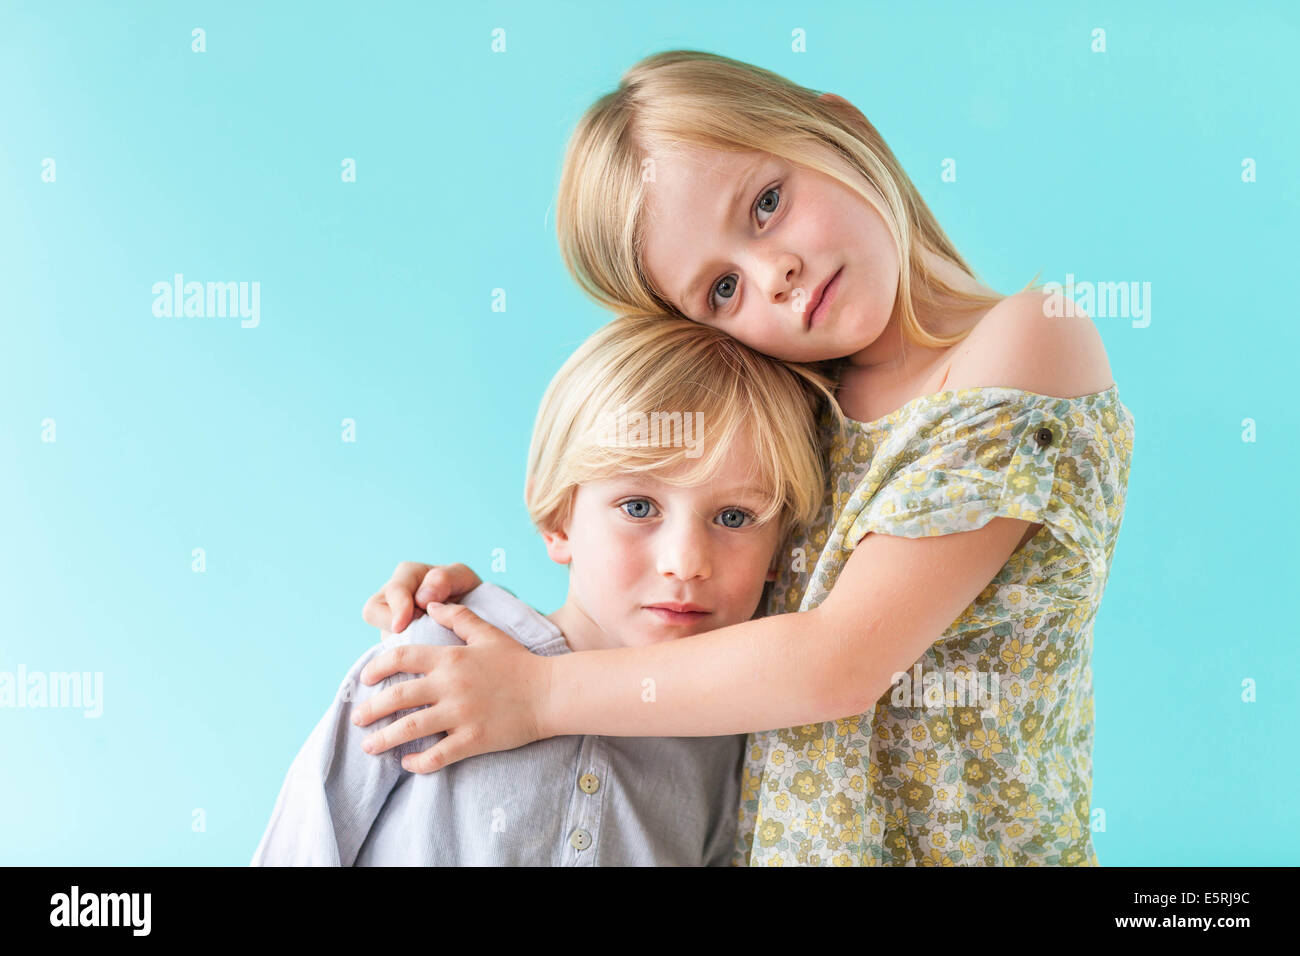 5 and 7 year old brother and sister. Stock Photo